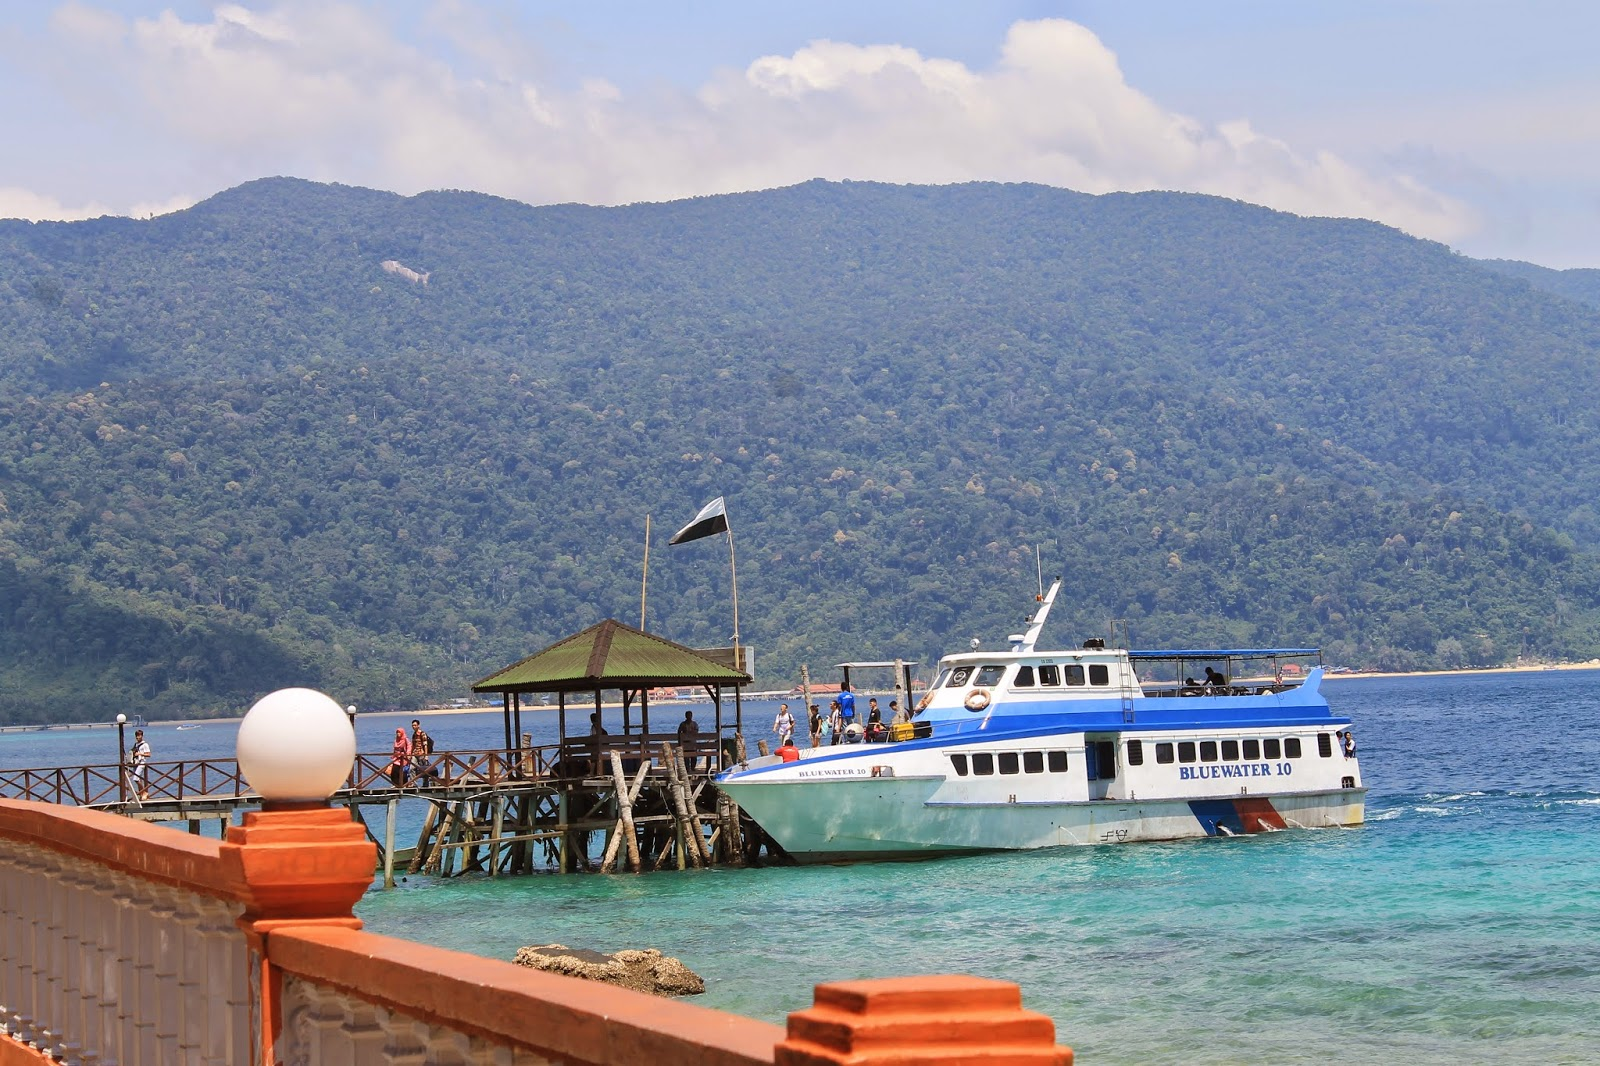 pulau tioman holiday Live weather in tioman the latest and todays weather in tioman, malaysia updated regularly.